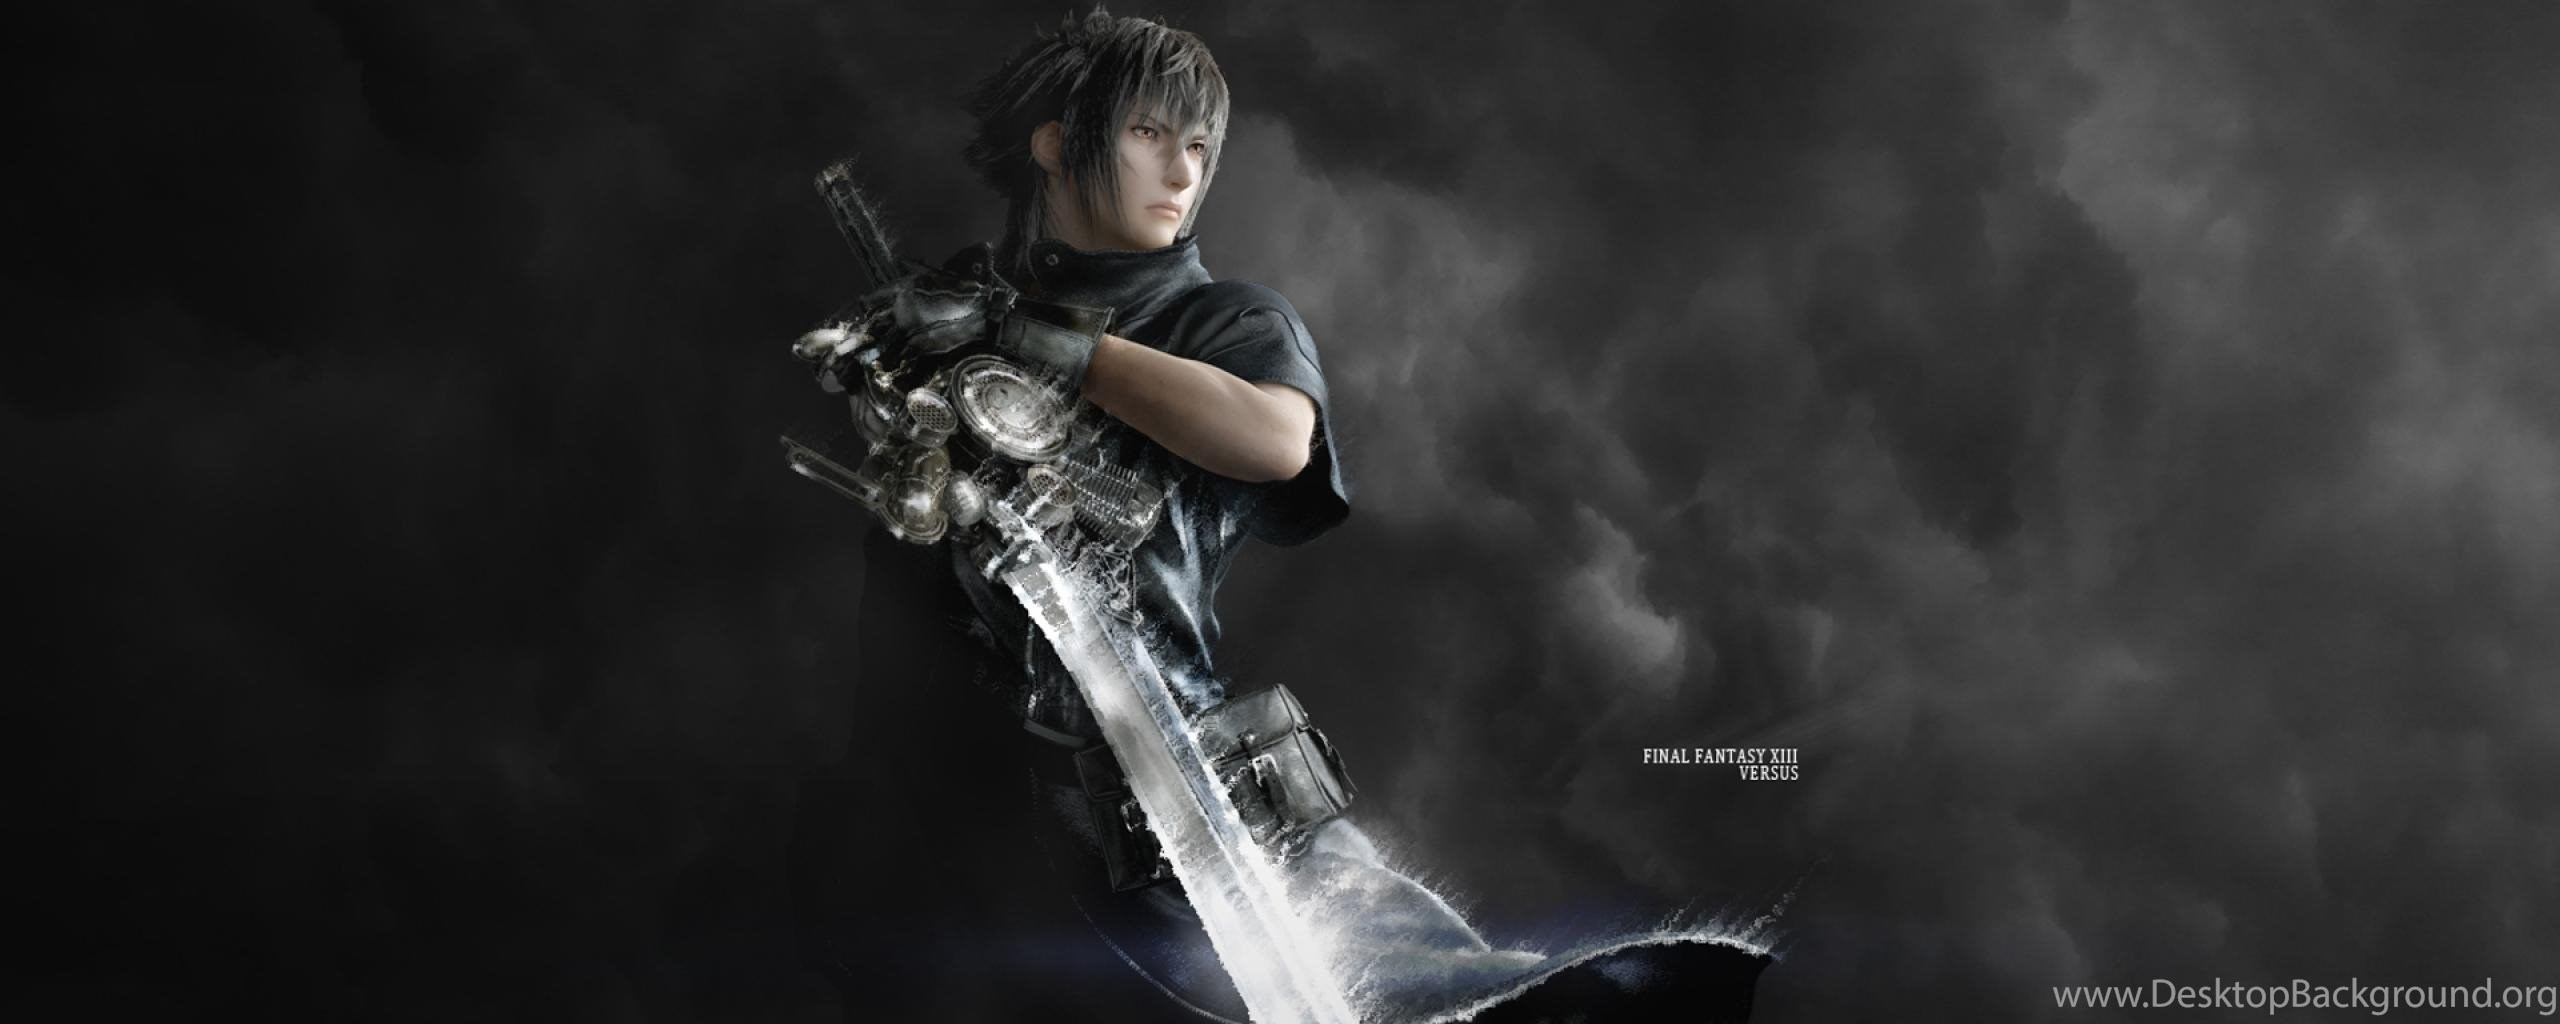 Final Fantasy 2560x1440 Hd Wallpapers And Free Stock Photo Desktop Background